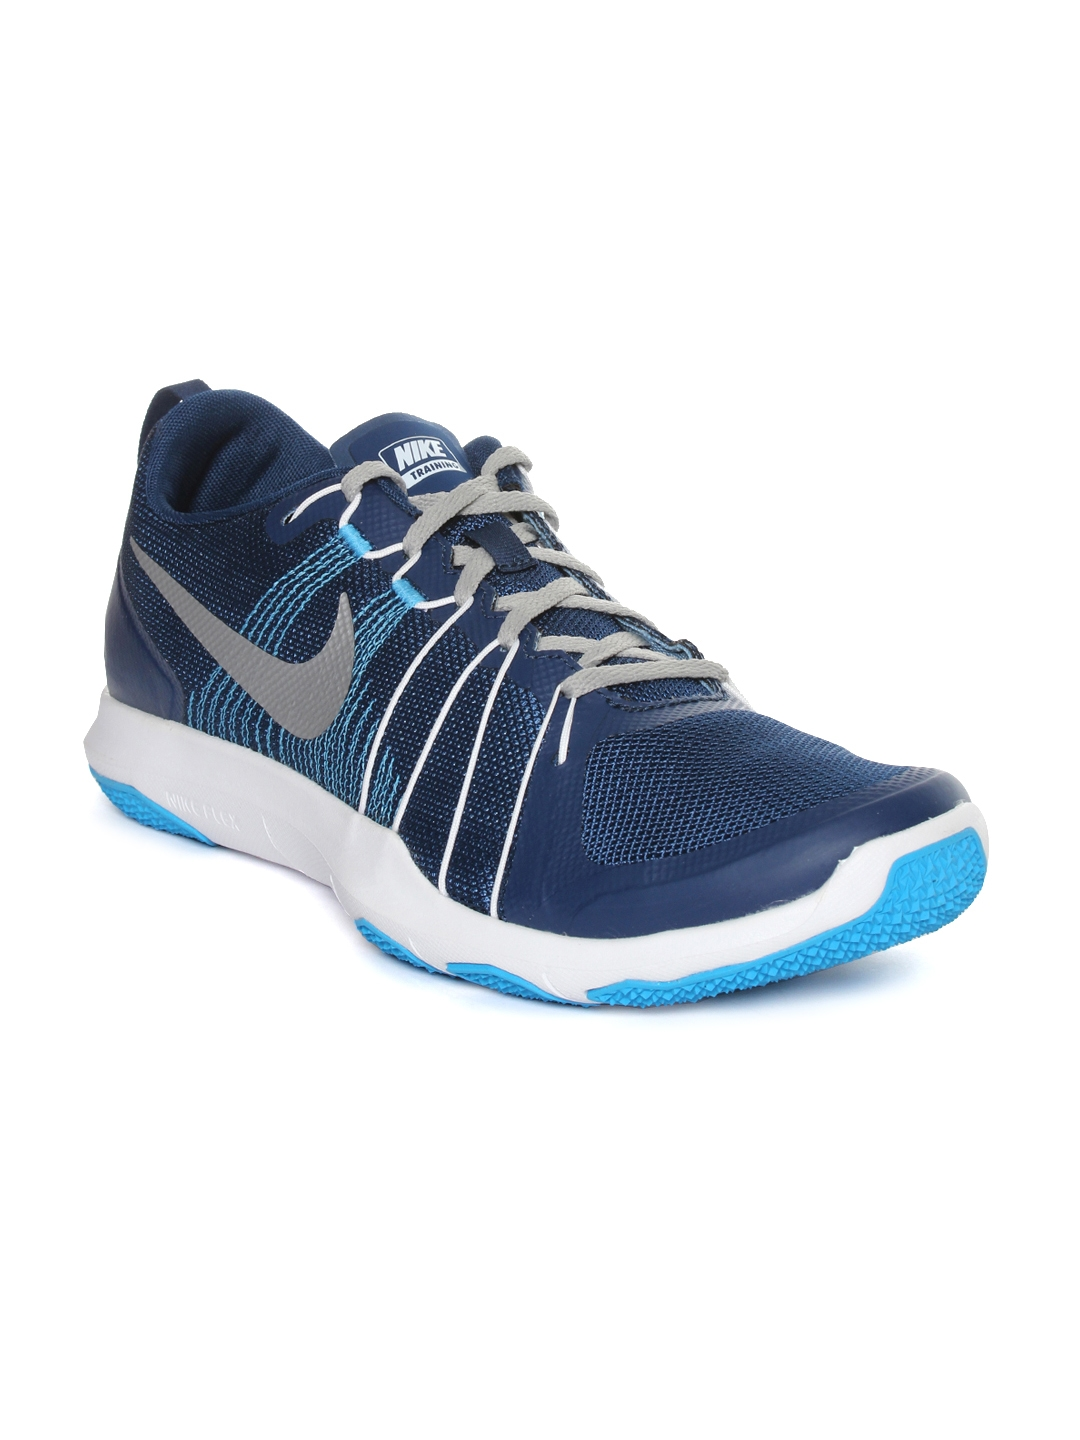 Buy Nike Men Navy Blue Flex Training Shoes - Sports Shoes for Men ... a75a1f62e25d